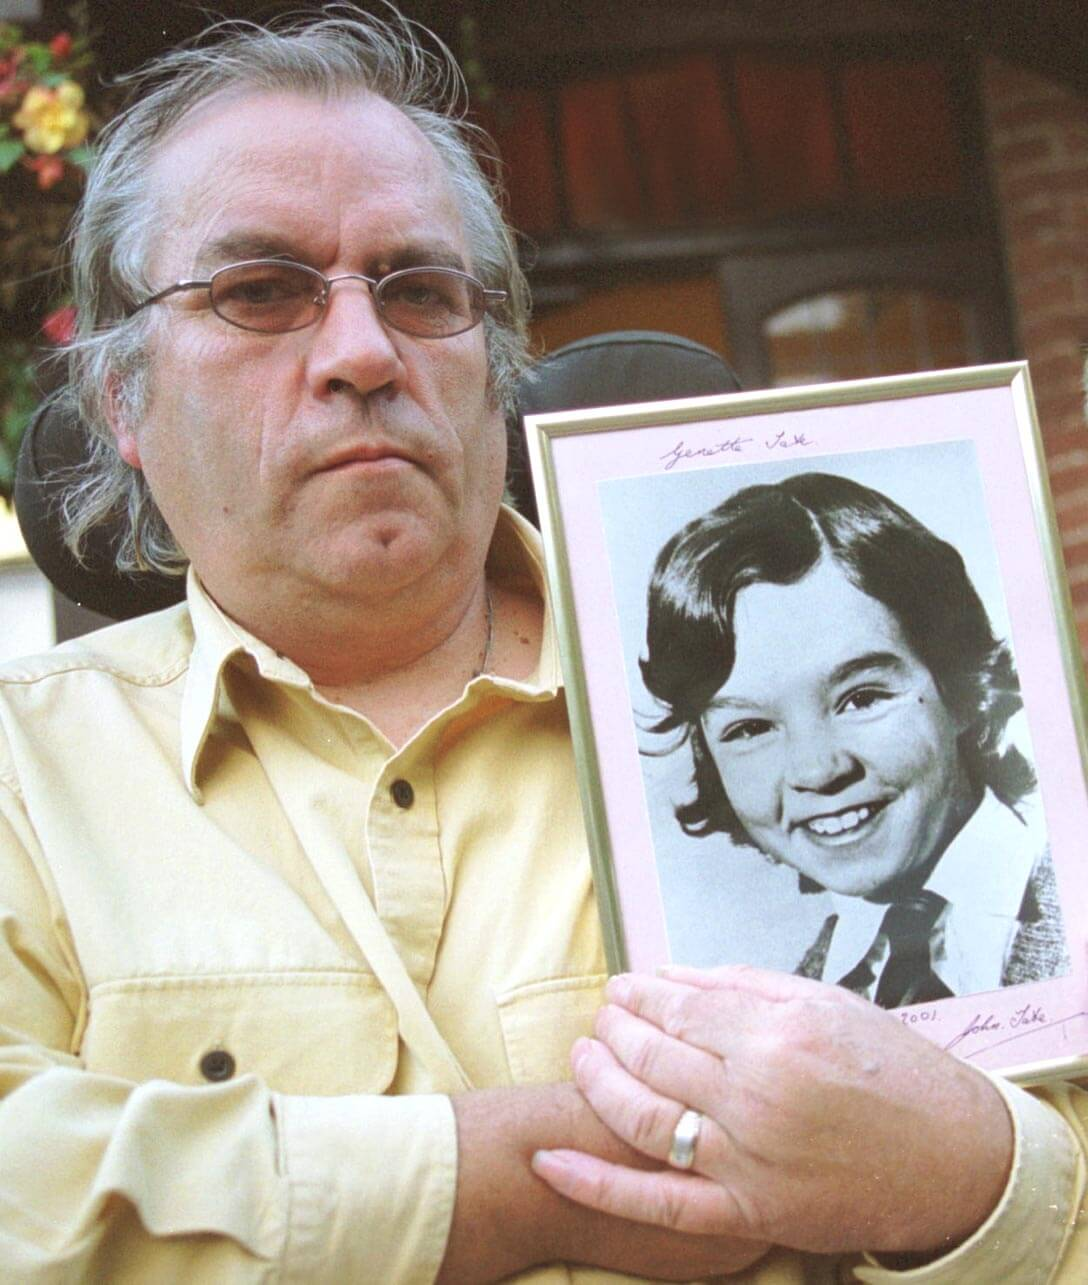 John Tate with a photo of his daughter Genette.